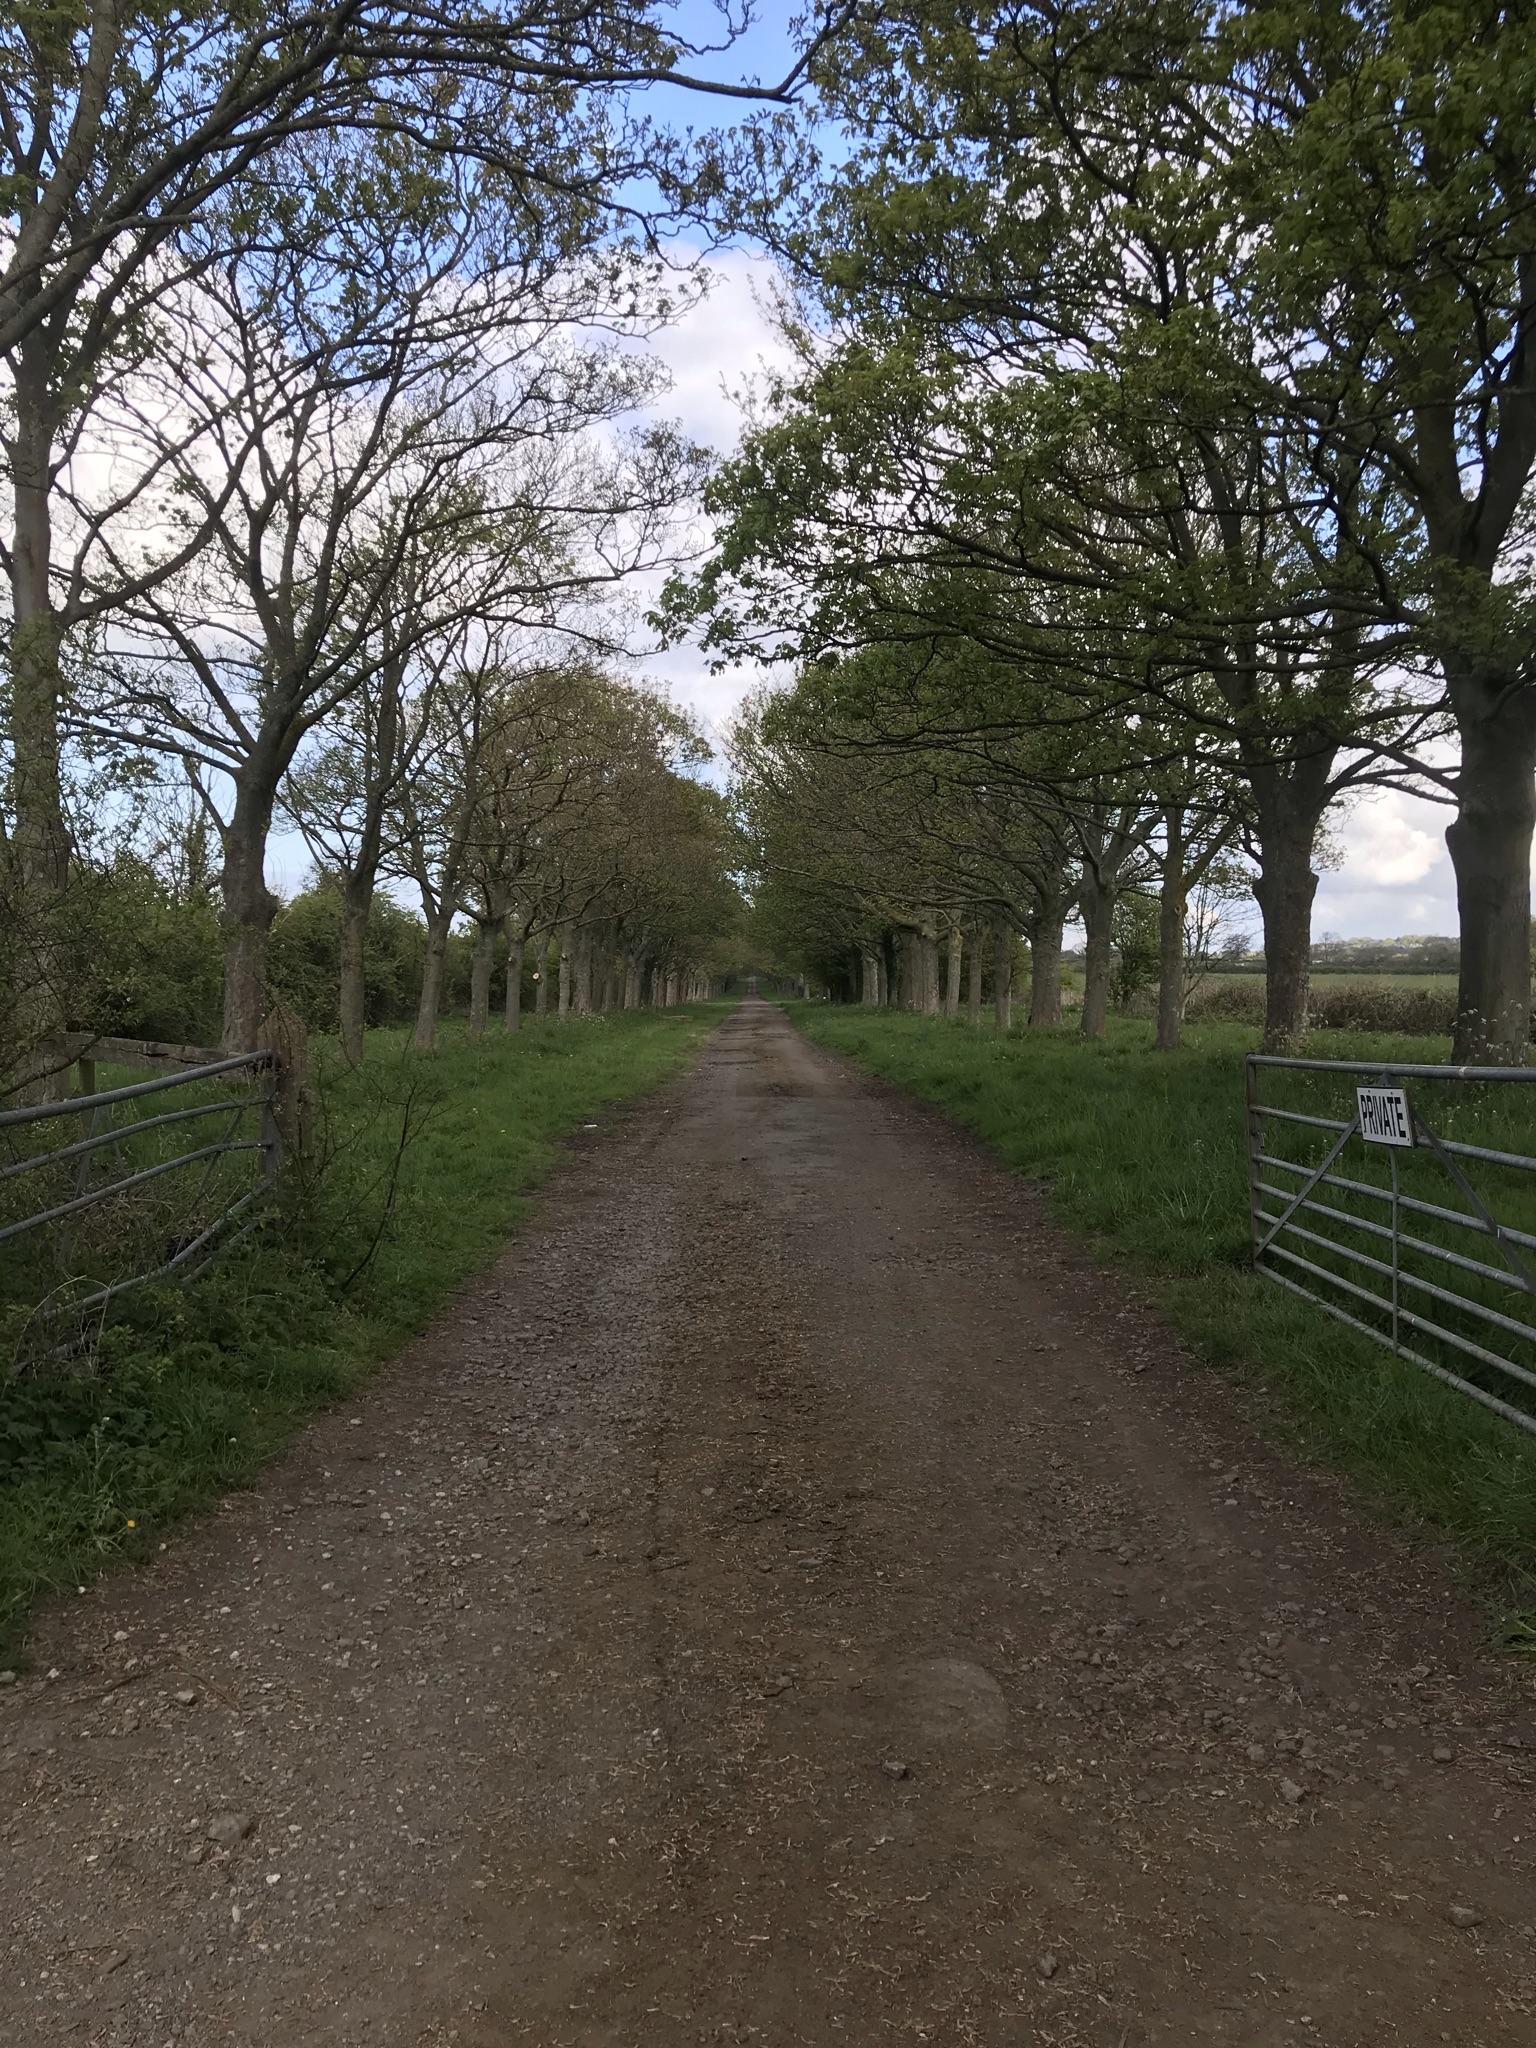 A tree lined dirt road with scruffy metal gates.